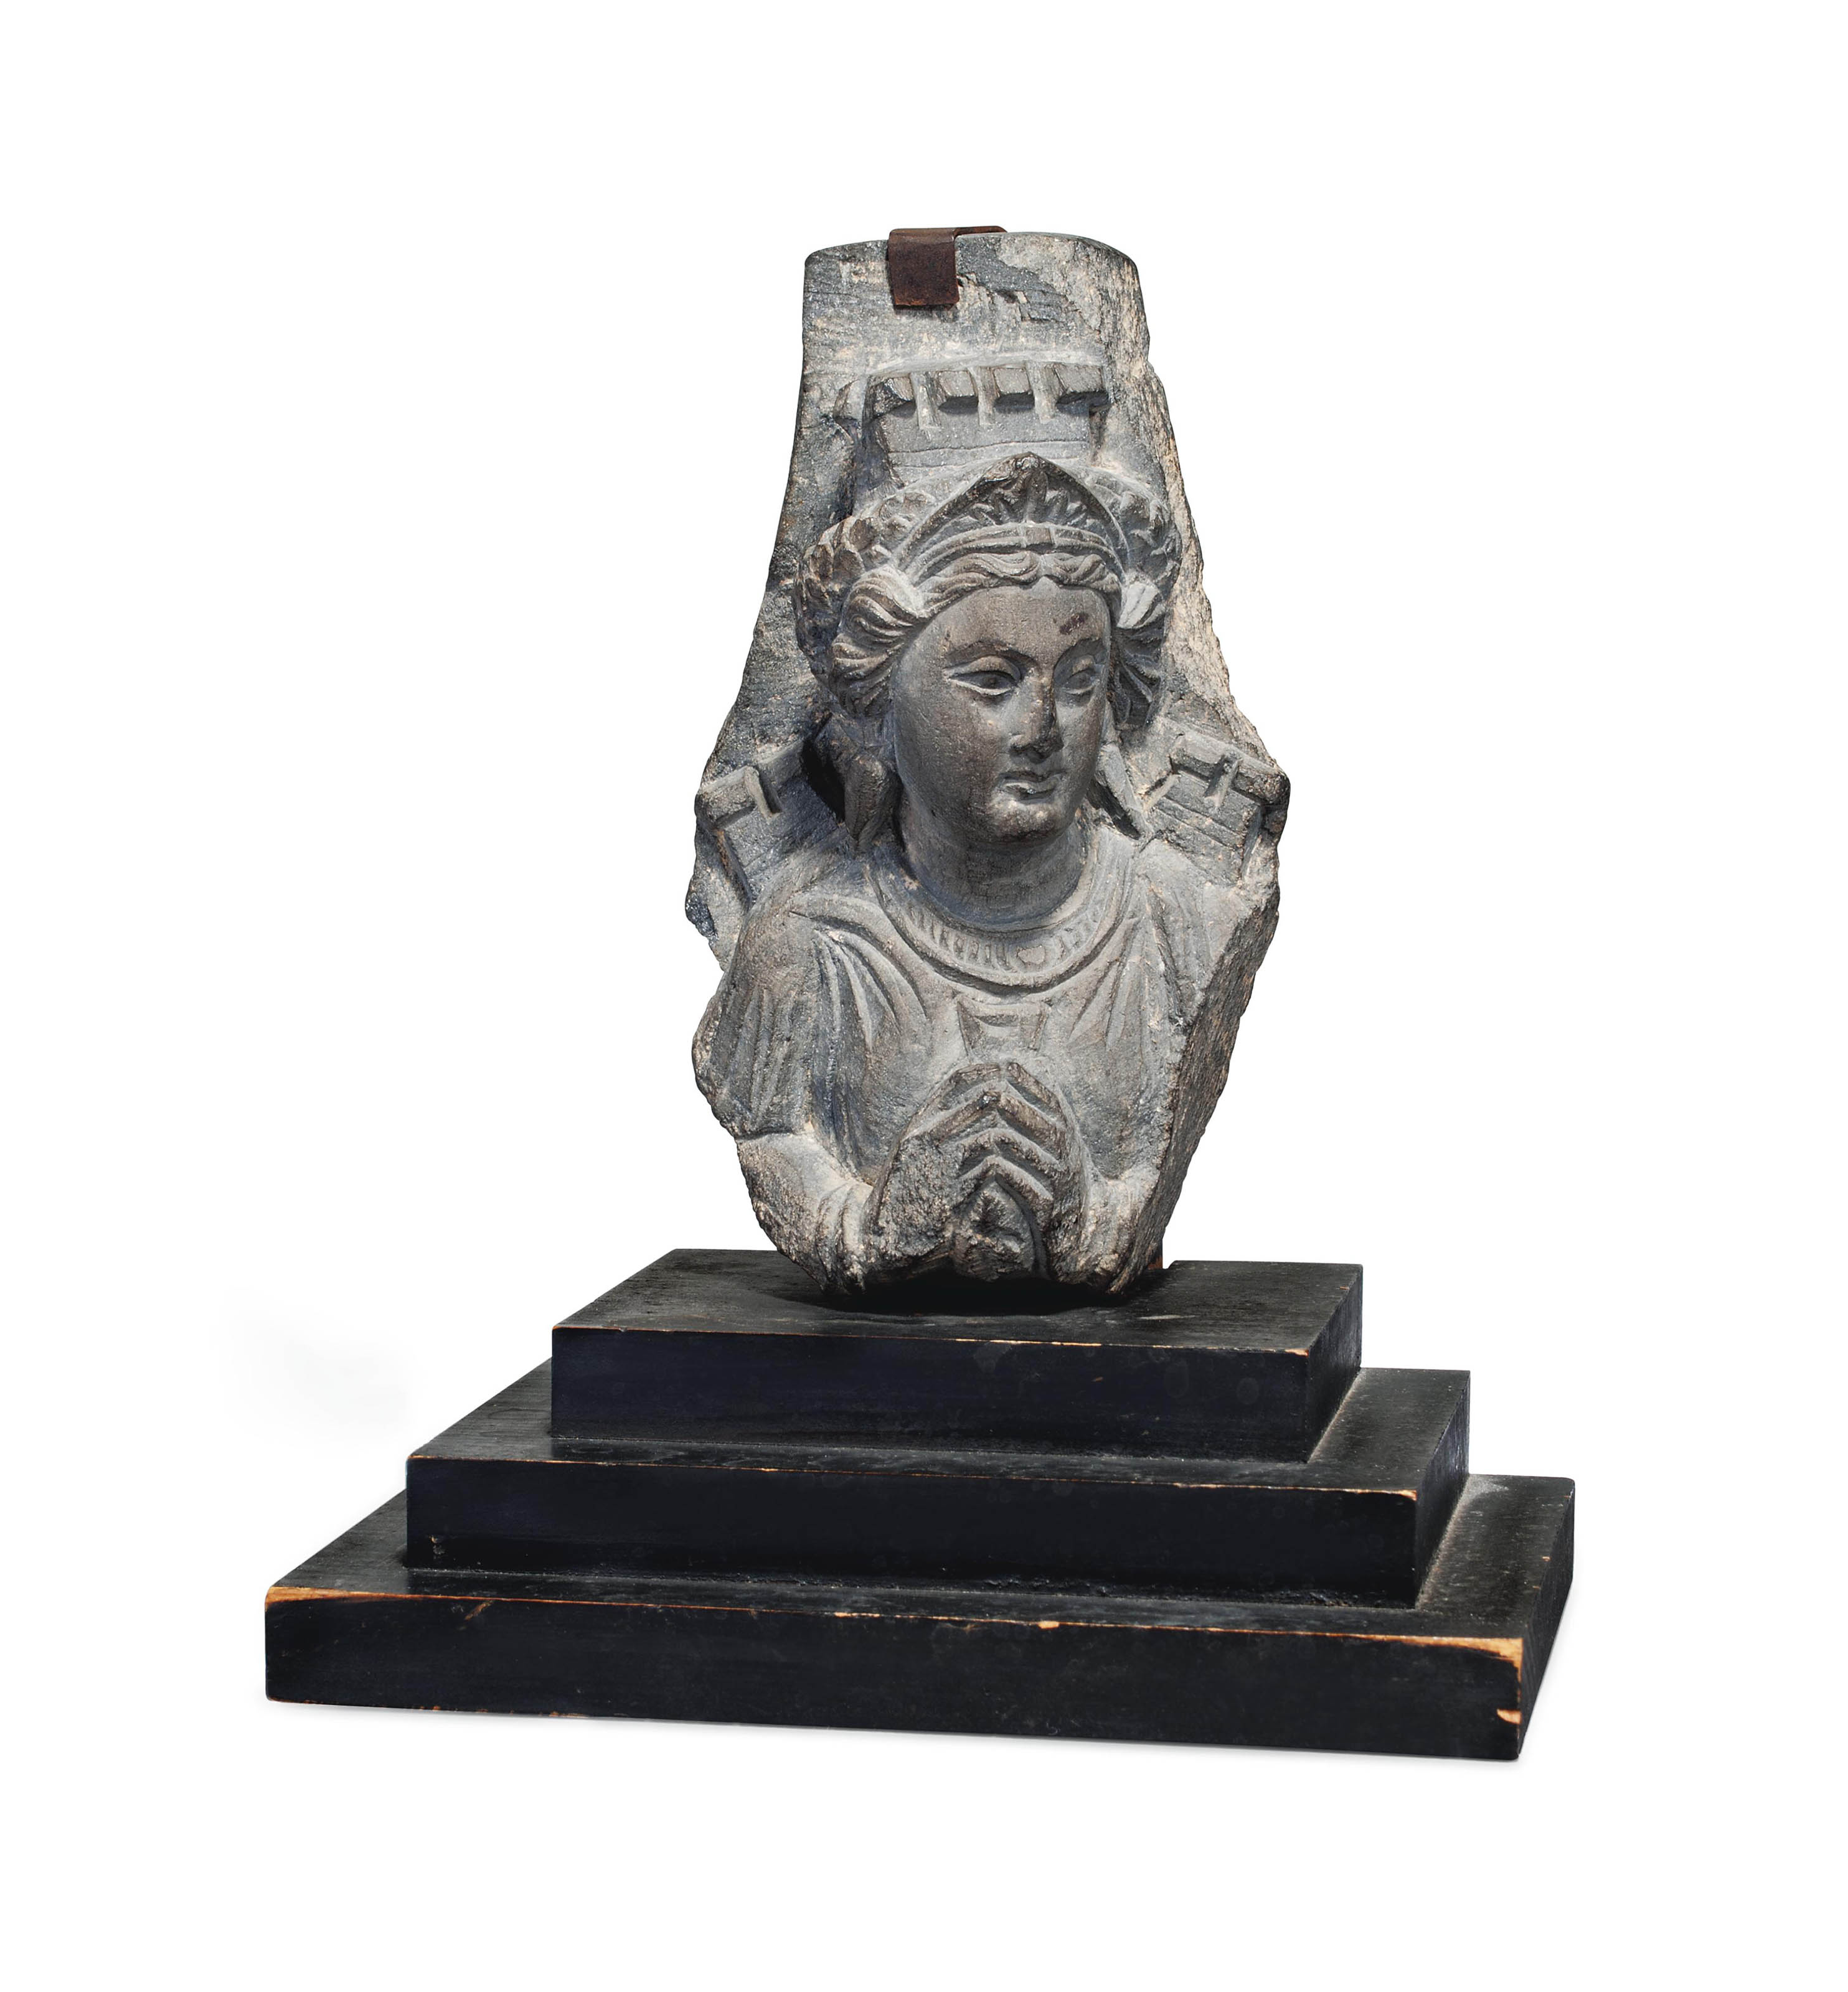 AN ALLEGORICAL FIGURE OF A CITY (TYCHE)